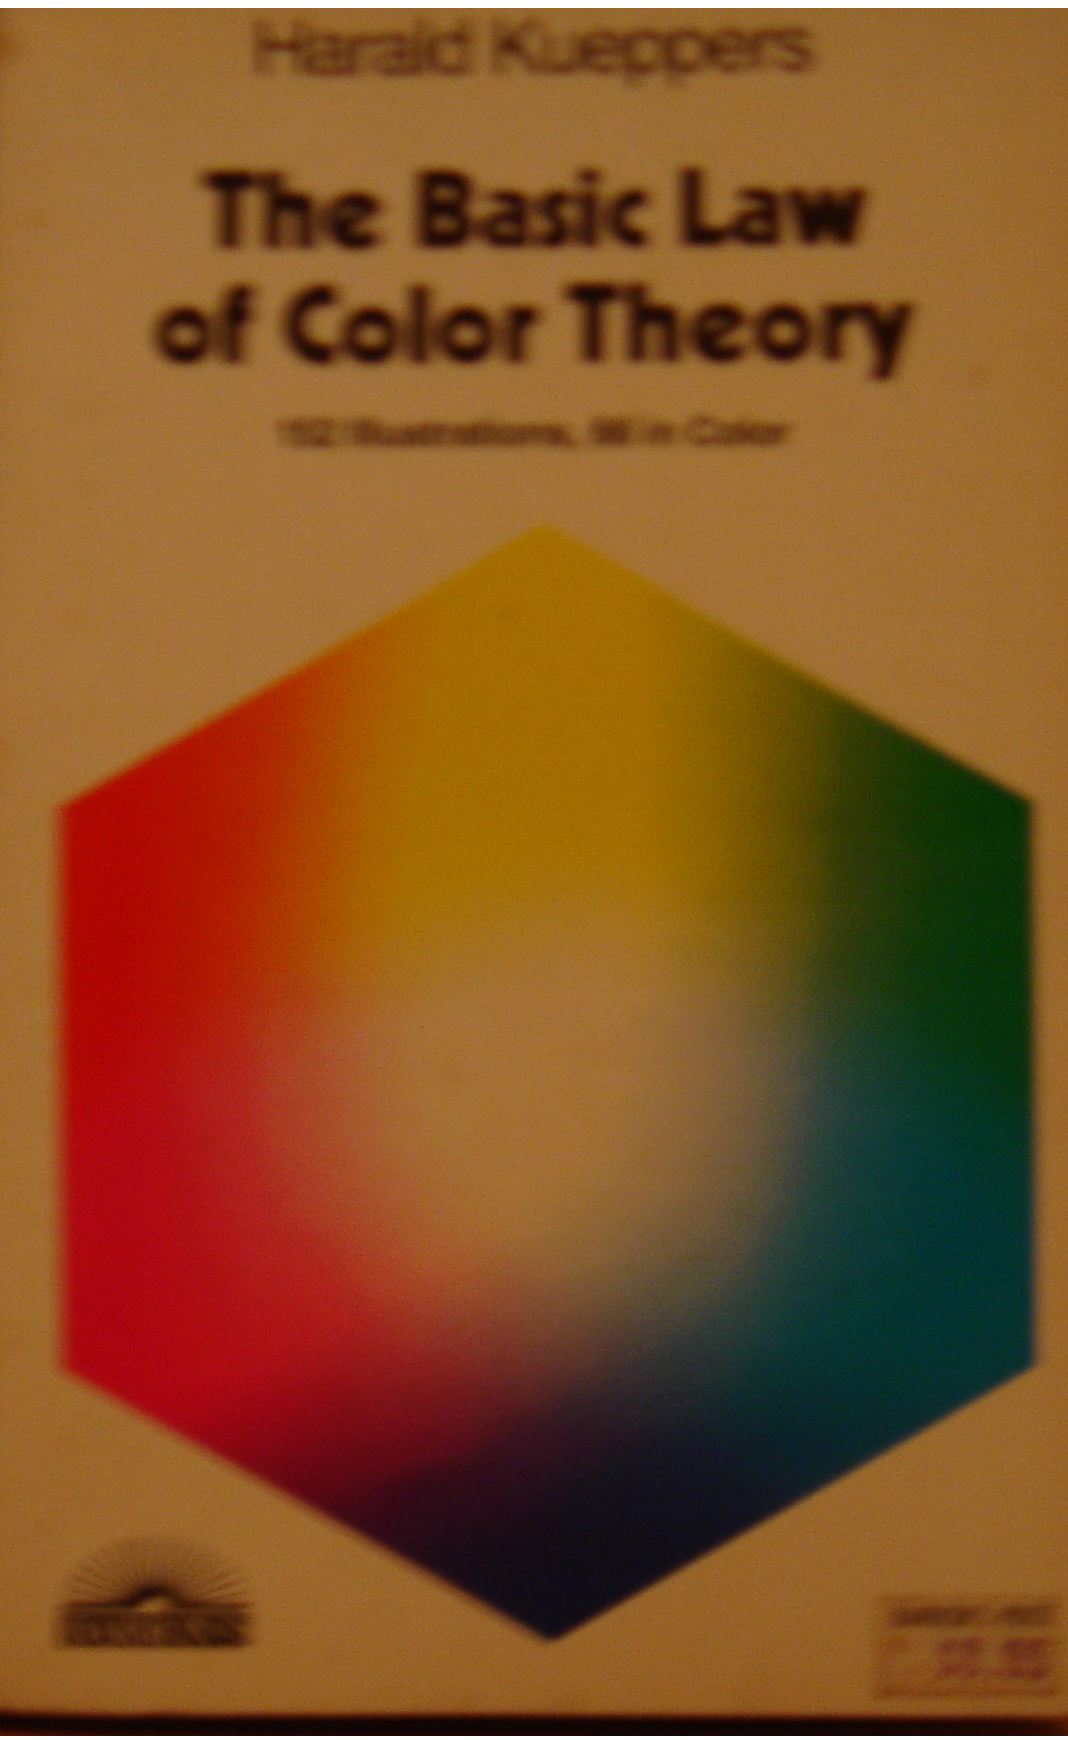 The Basic Law of Color Theory